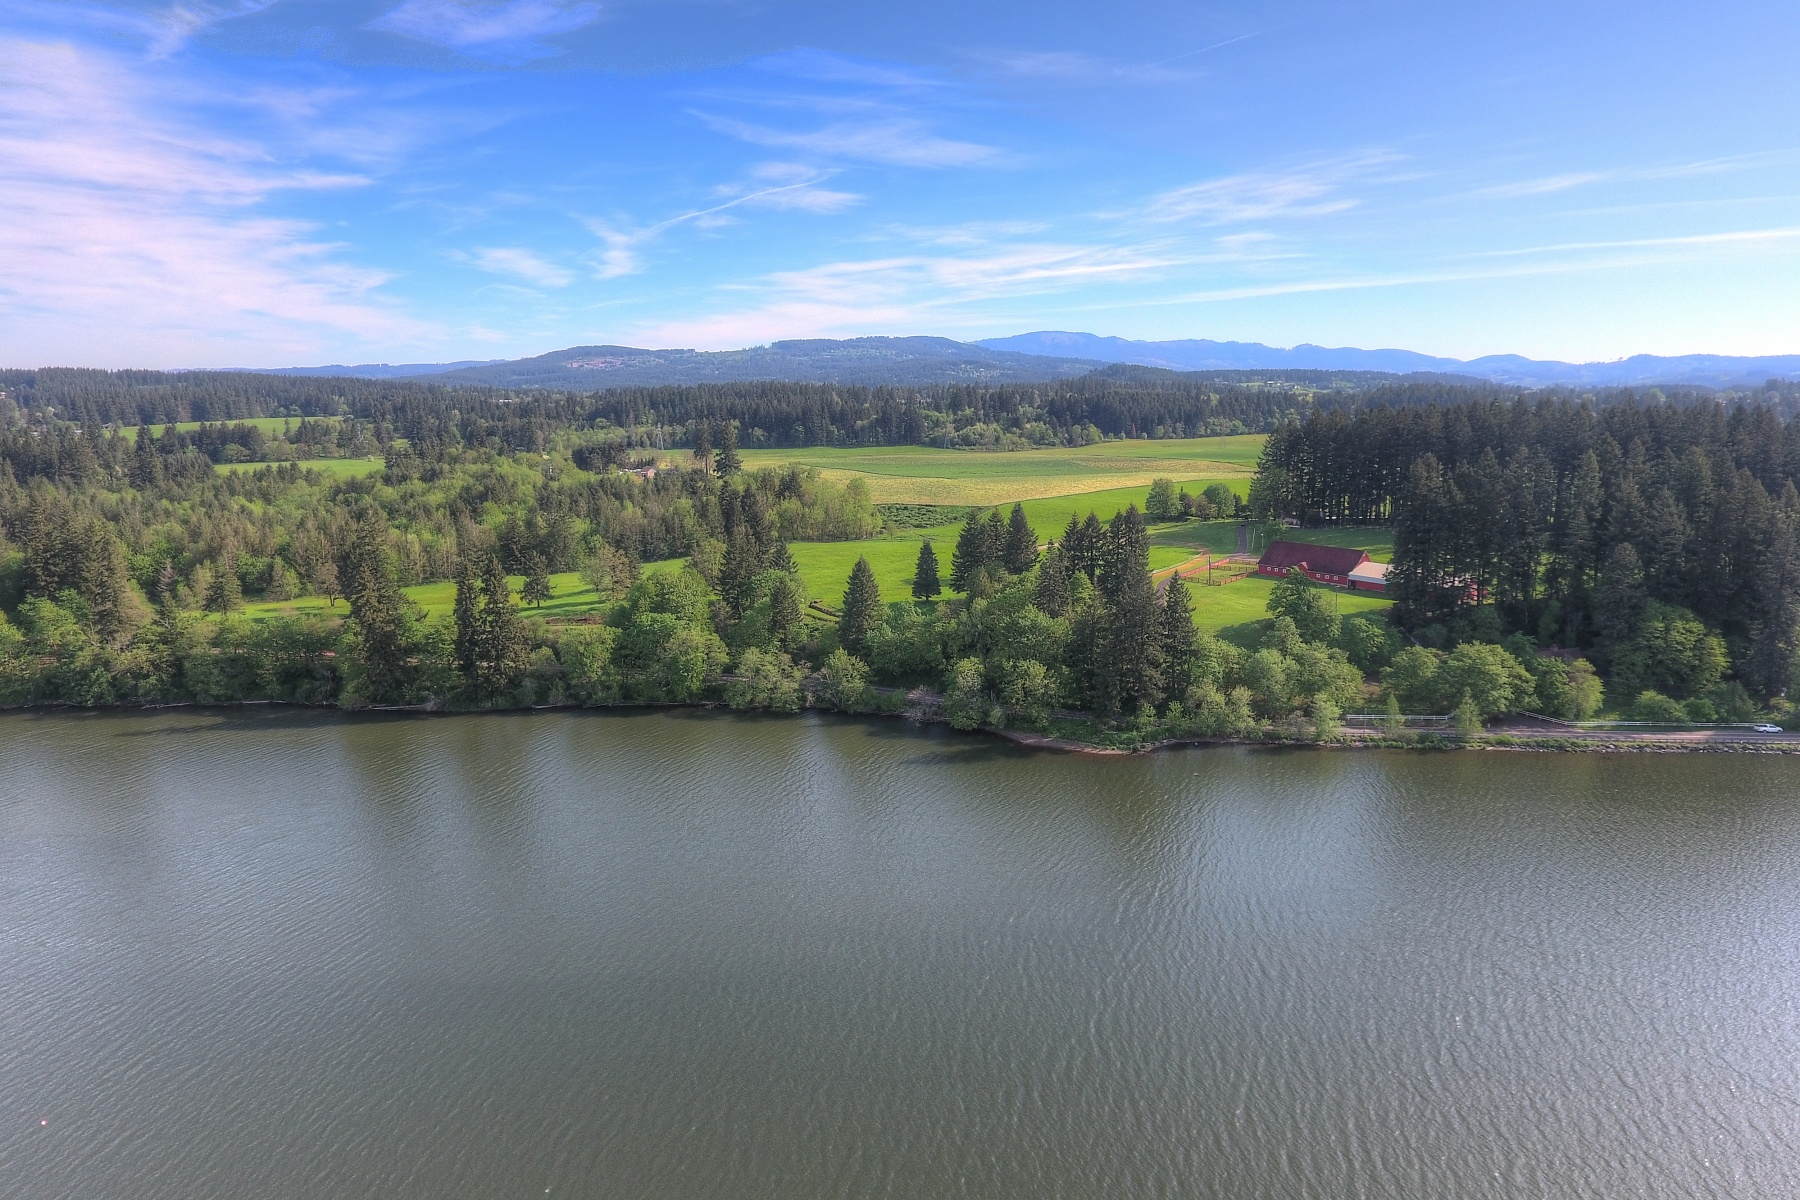 Terreno por un Venta en Lacamas Lake Opportunity 215 SE LEADBETTER RD Camas, Washington, 98607 Estados Unidos